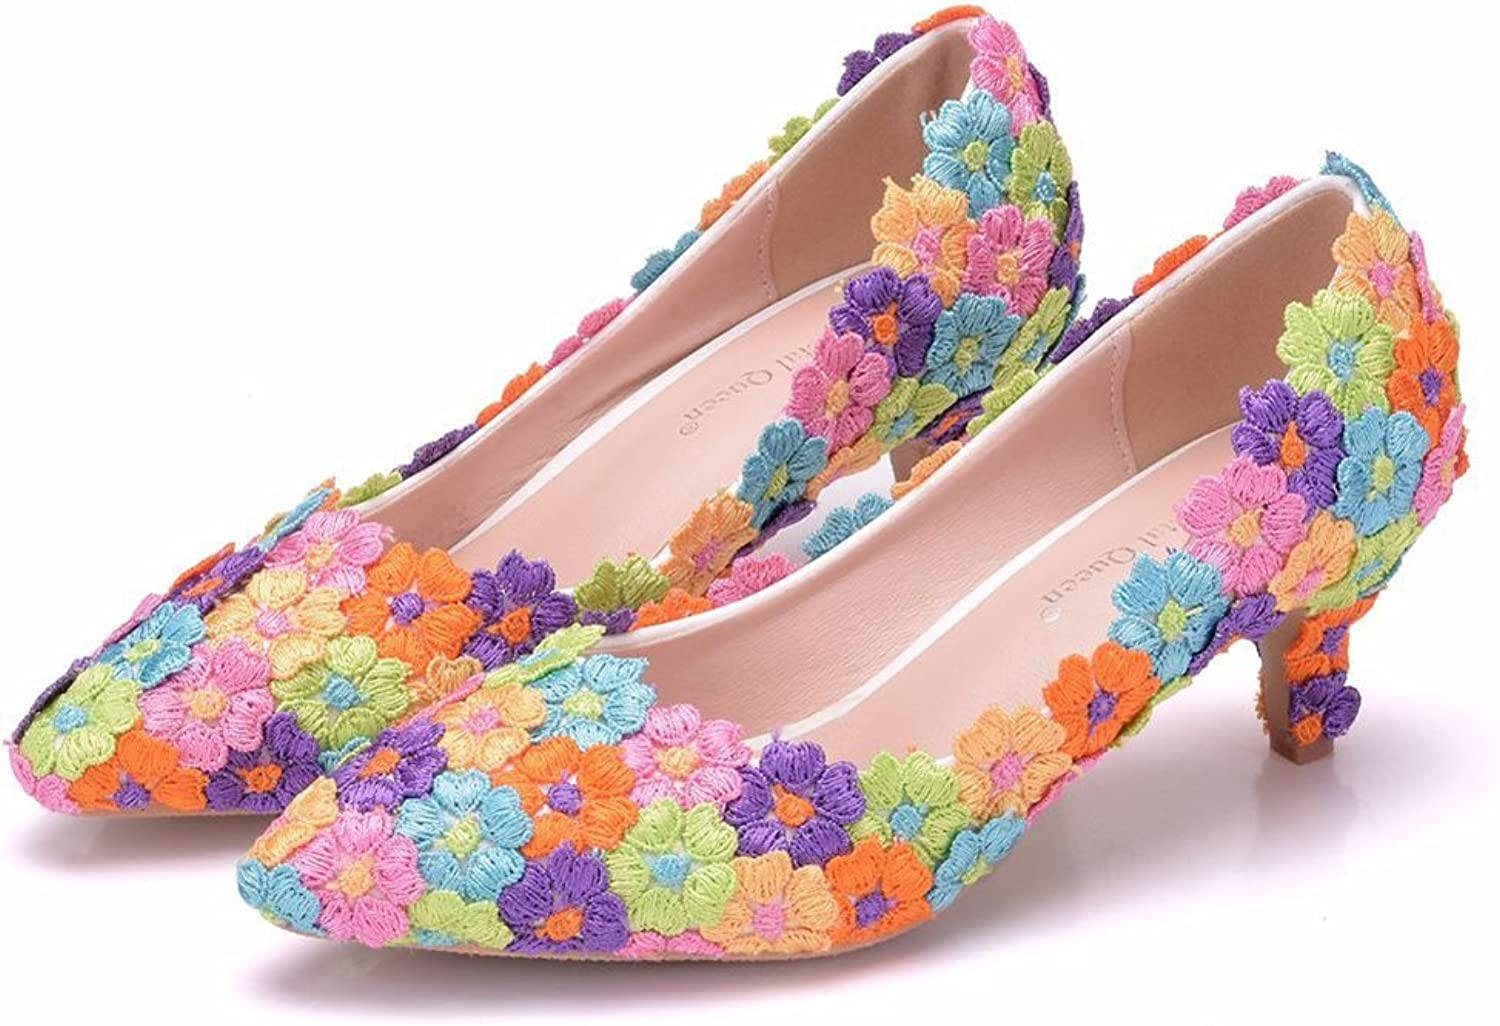 SUNNY Store Women Low Heel Comfort Closed Toe Flowers Lace Bridal Wedding shoes